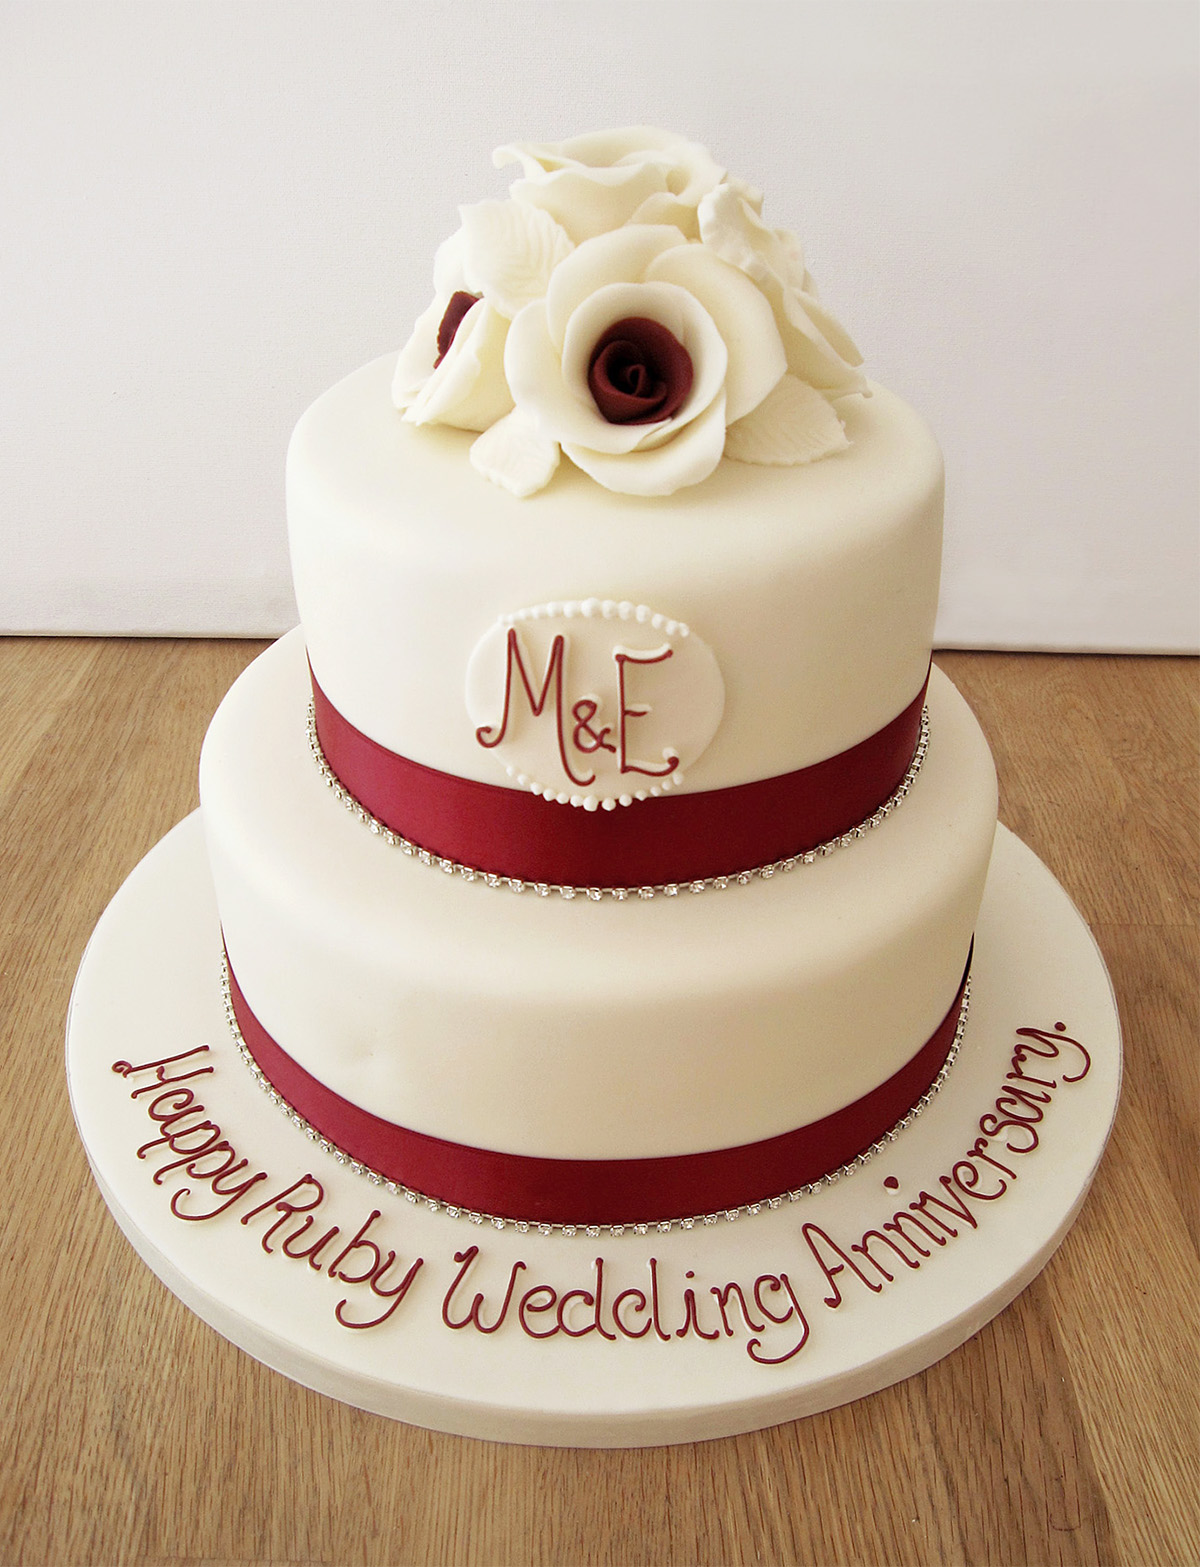 2 Tier Ruby Wedding Anniversary Cake